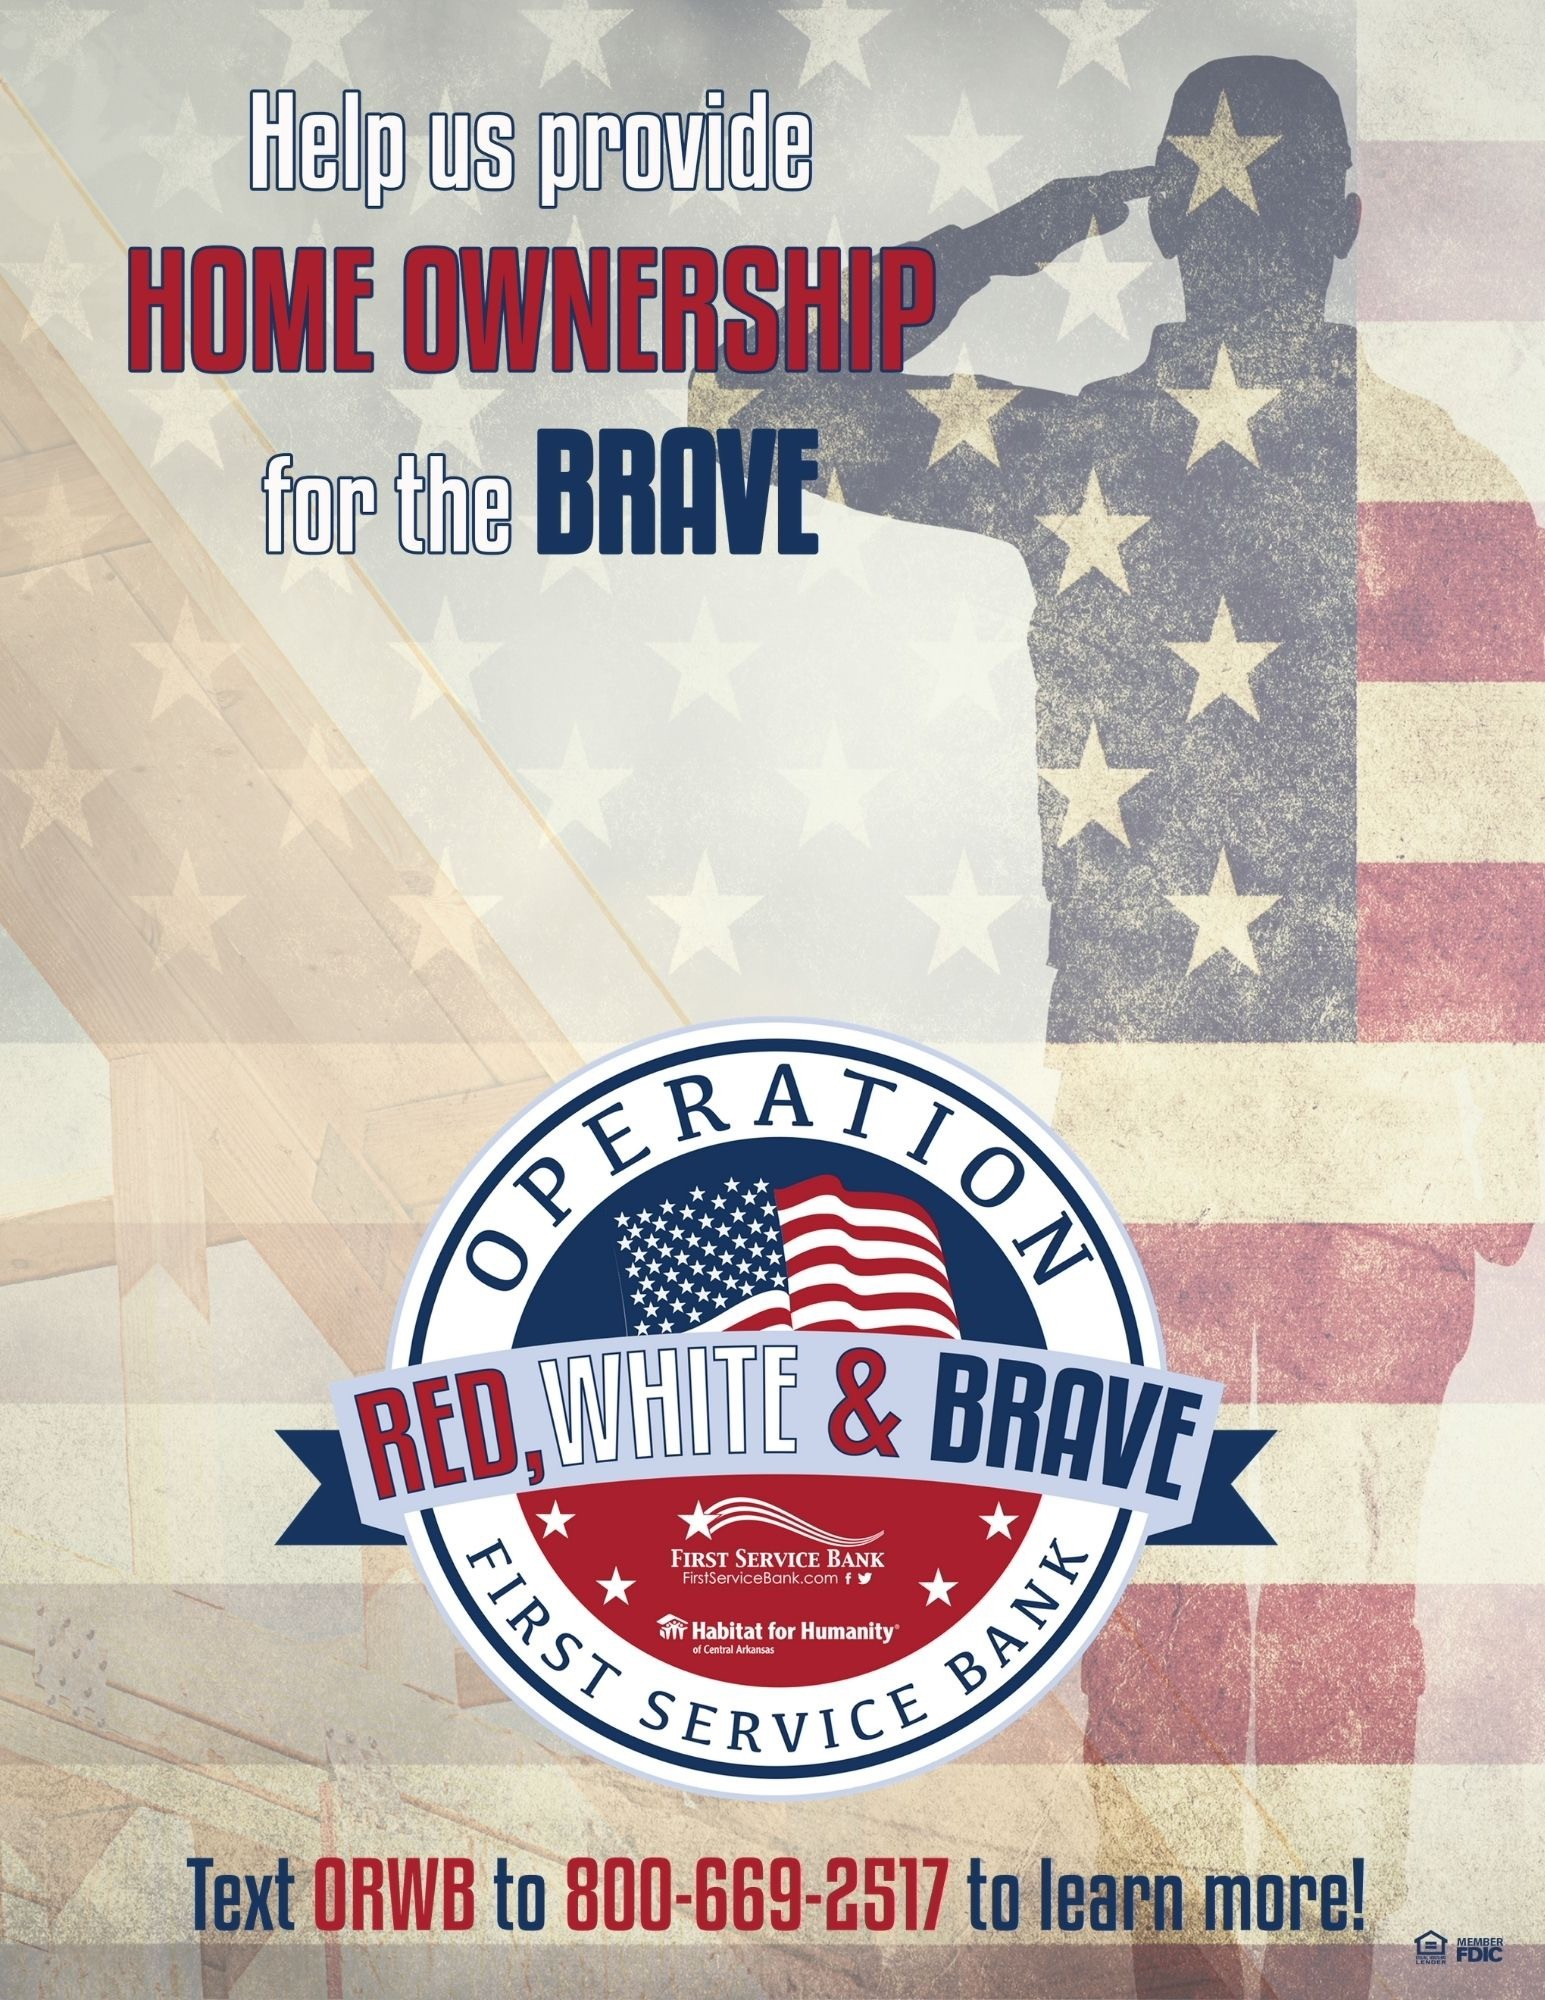 First Service Bank to Give Veterans New Homes - Operation Red, White & Brave Hopes to Raise $80,000 for Habitat for Humanity Project